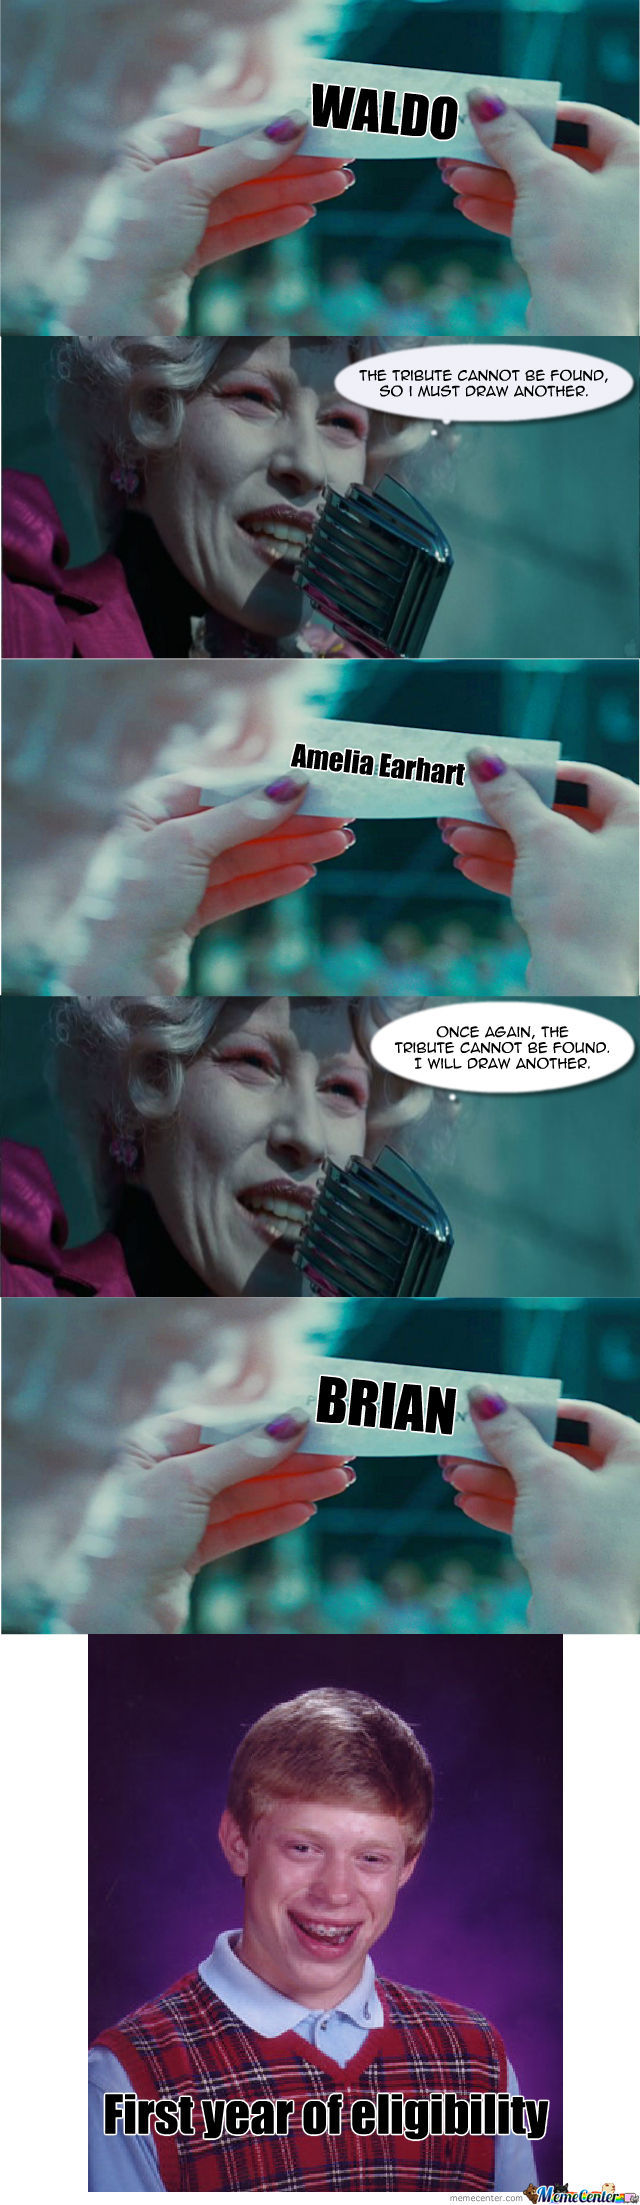 Bad Luck Brian: Hunger Games by saywhaaaat - Meme Center